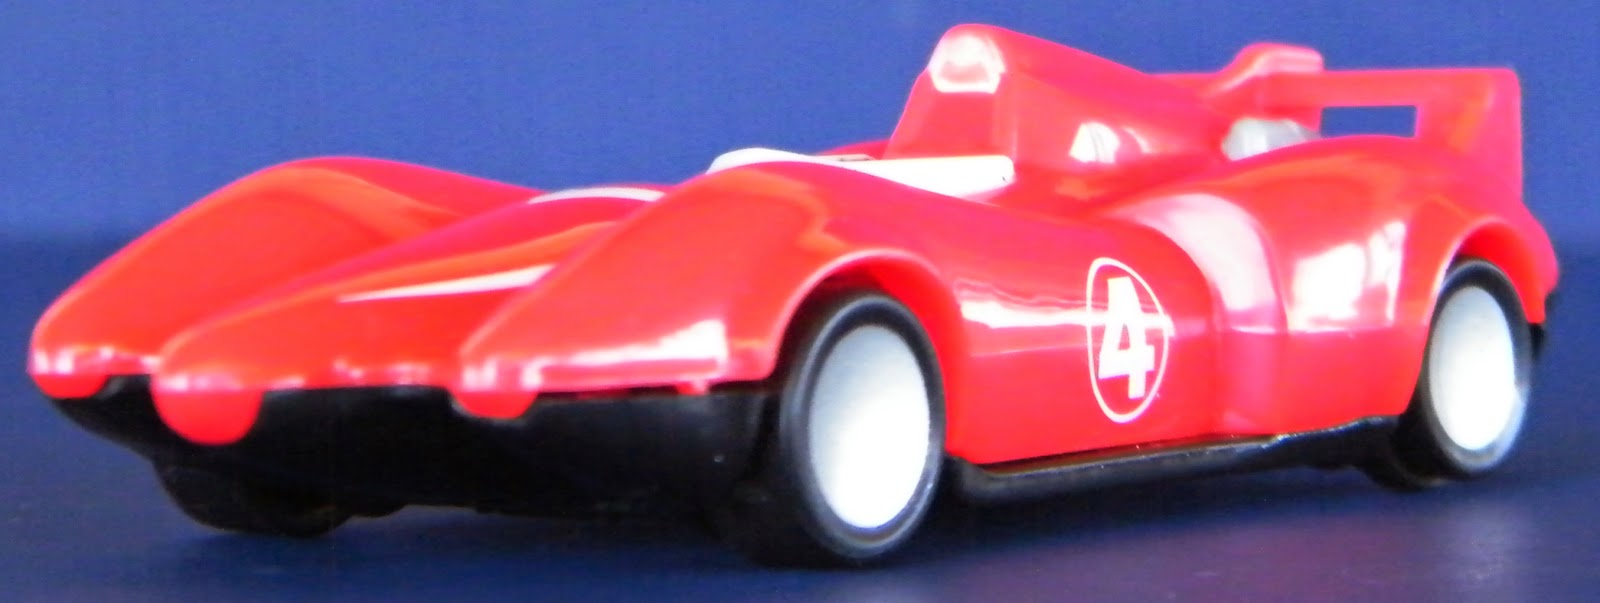 toys and stuff mcdonalds 2008 speed racer movie cars